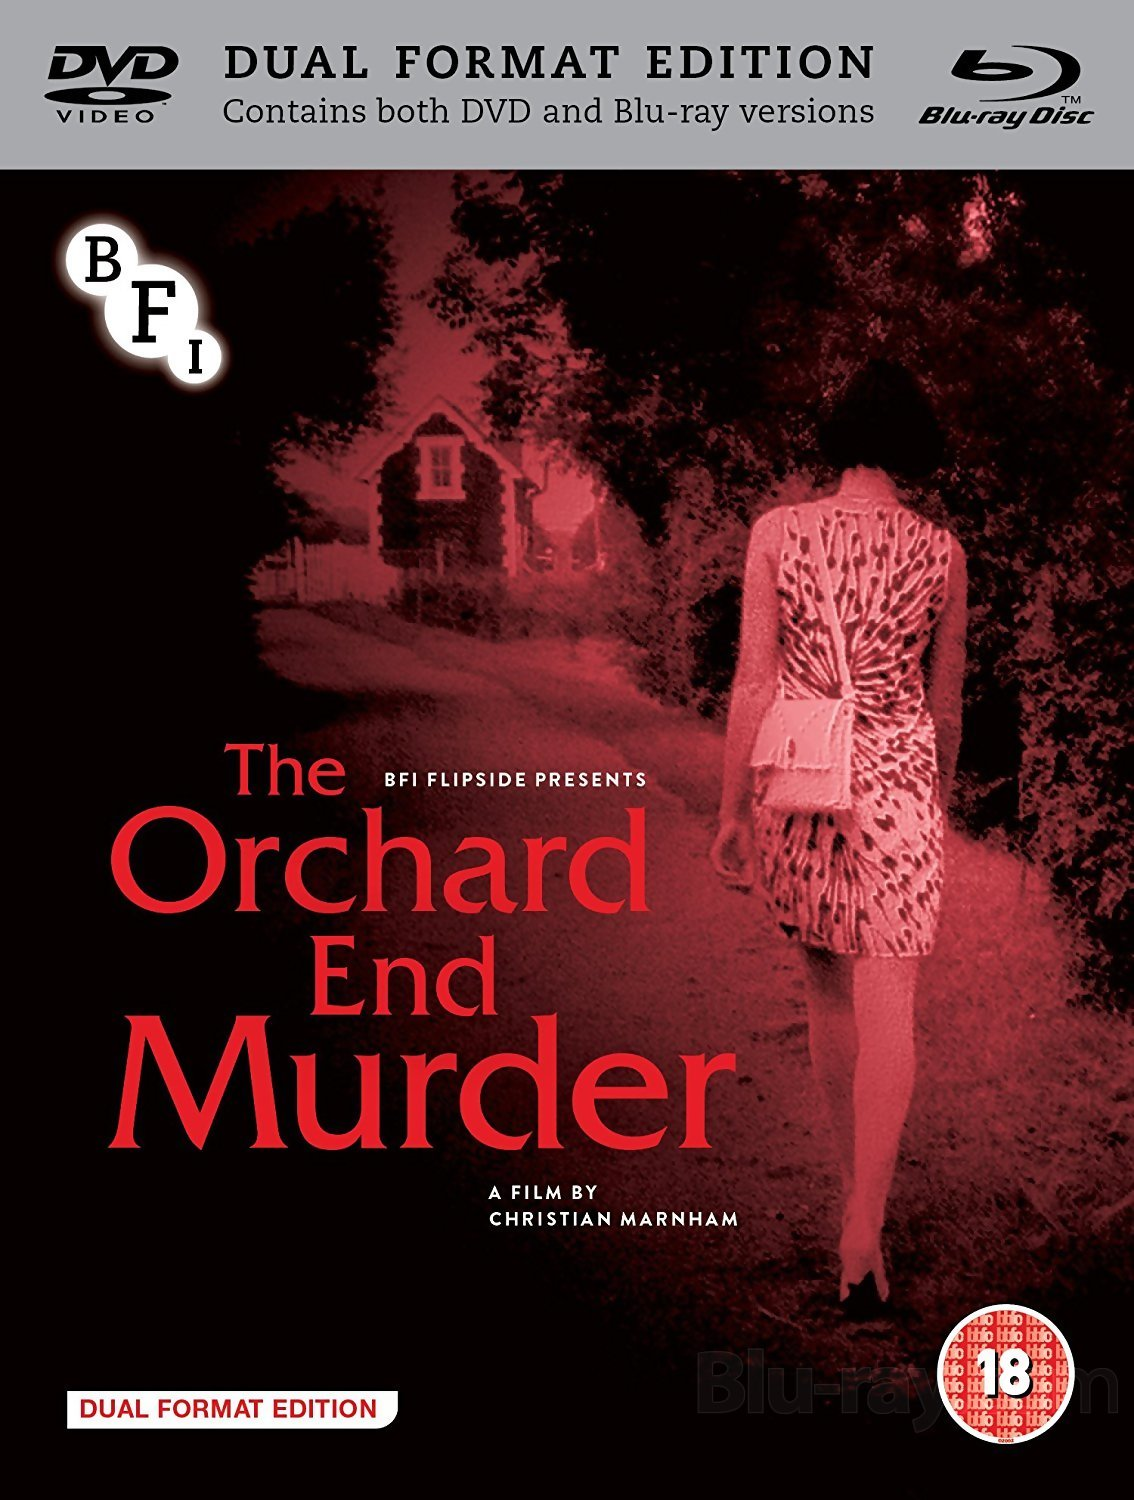 The Orchard End Murder kapak